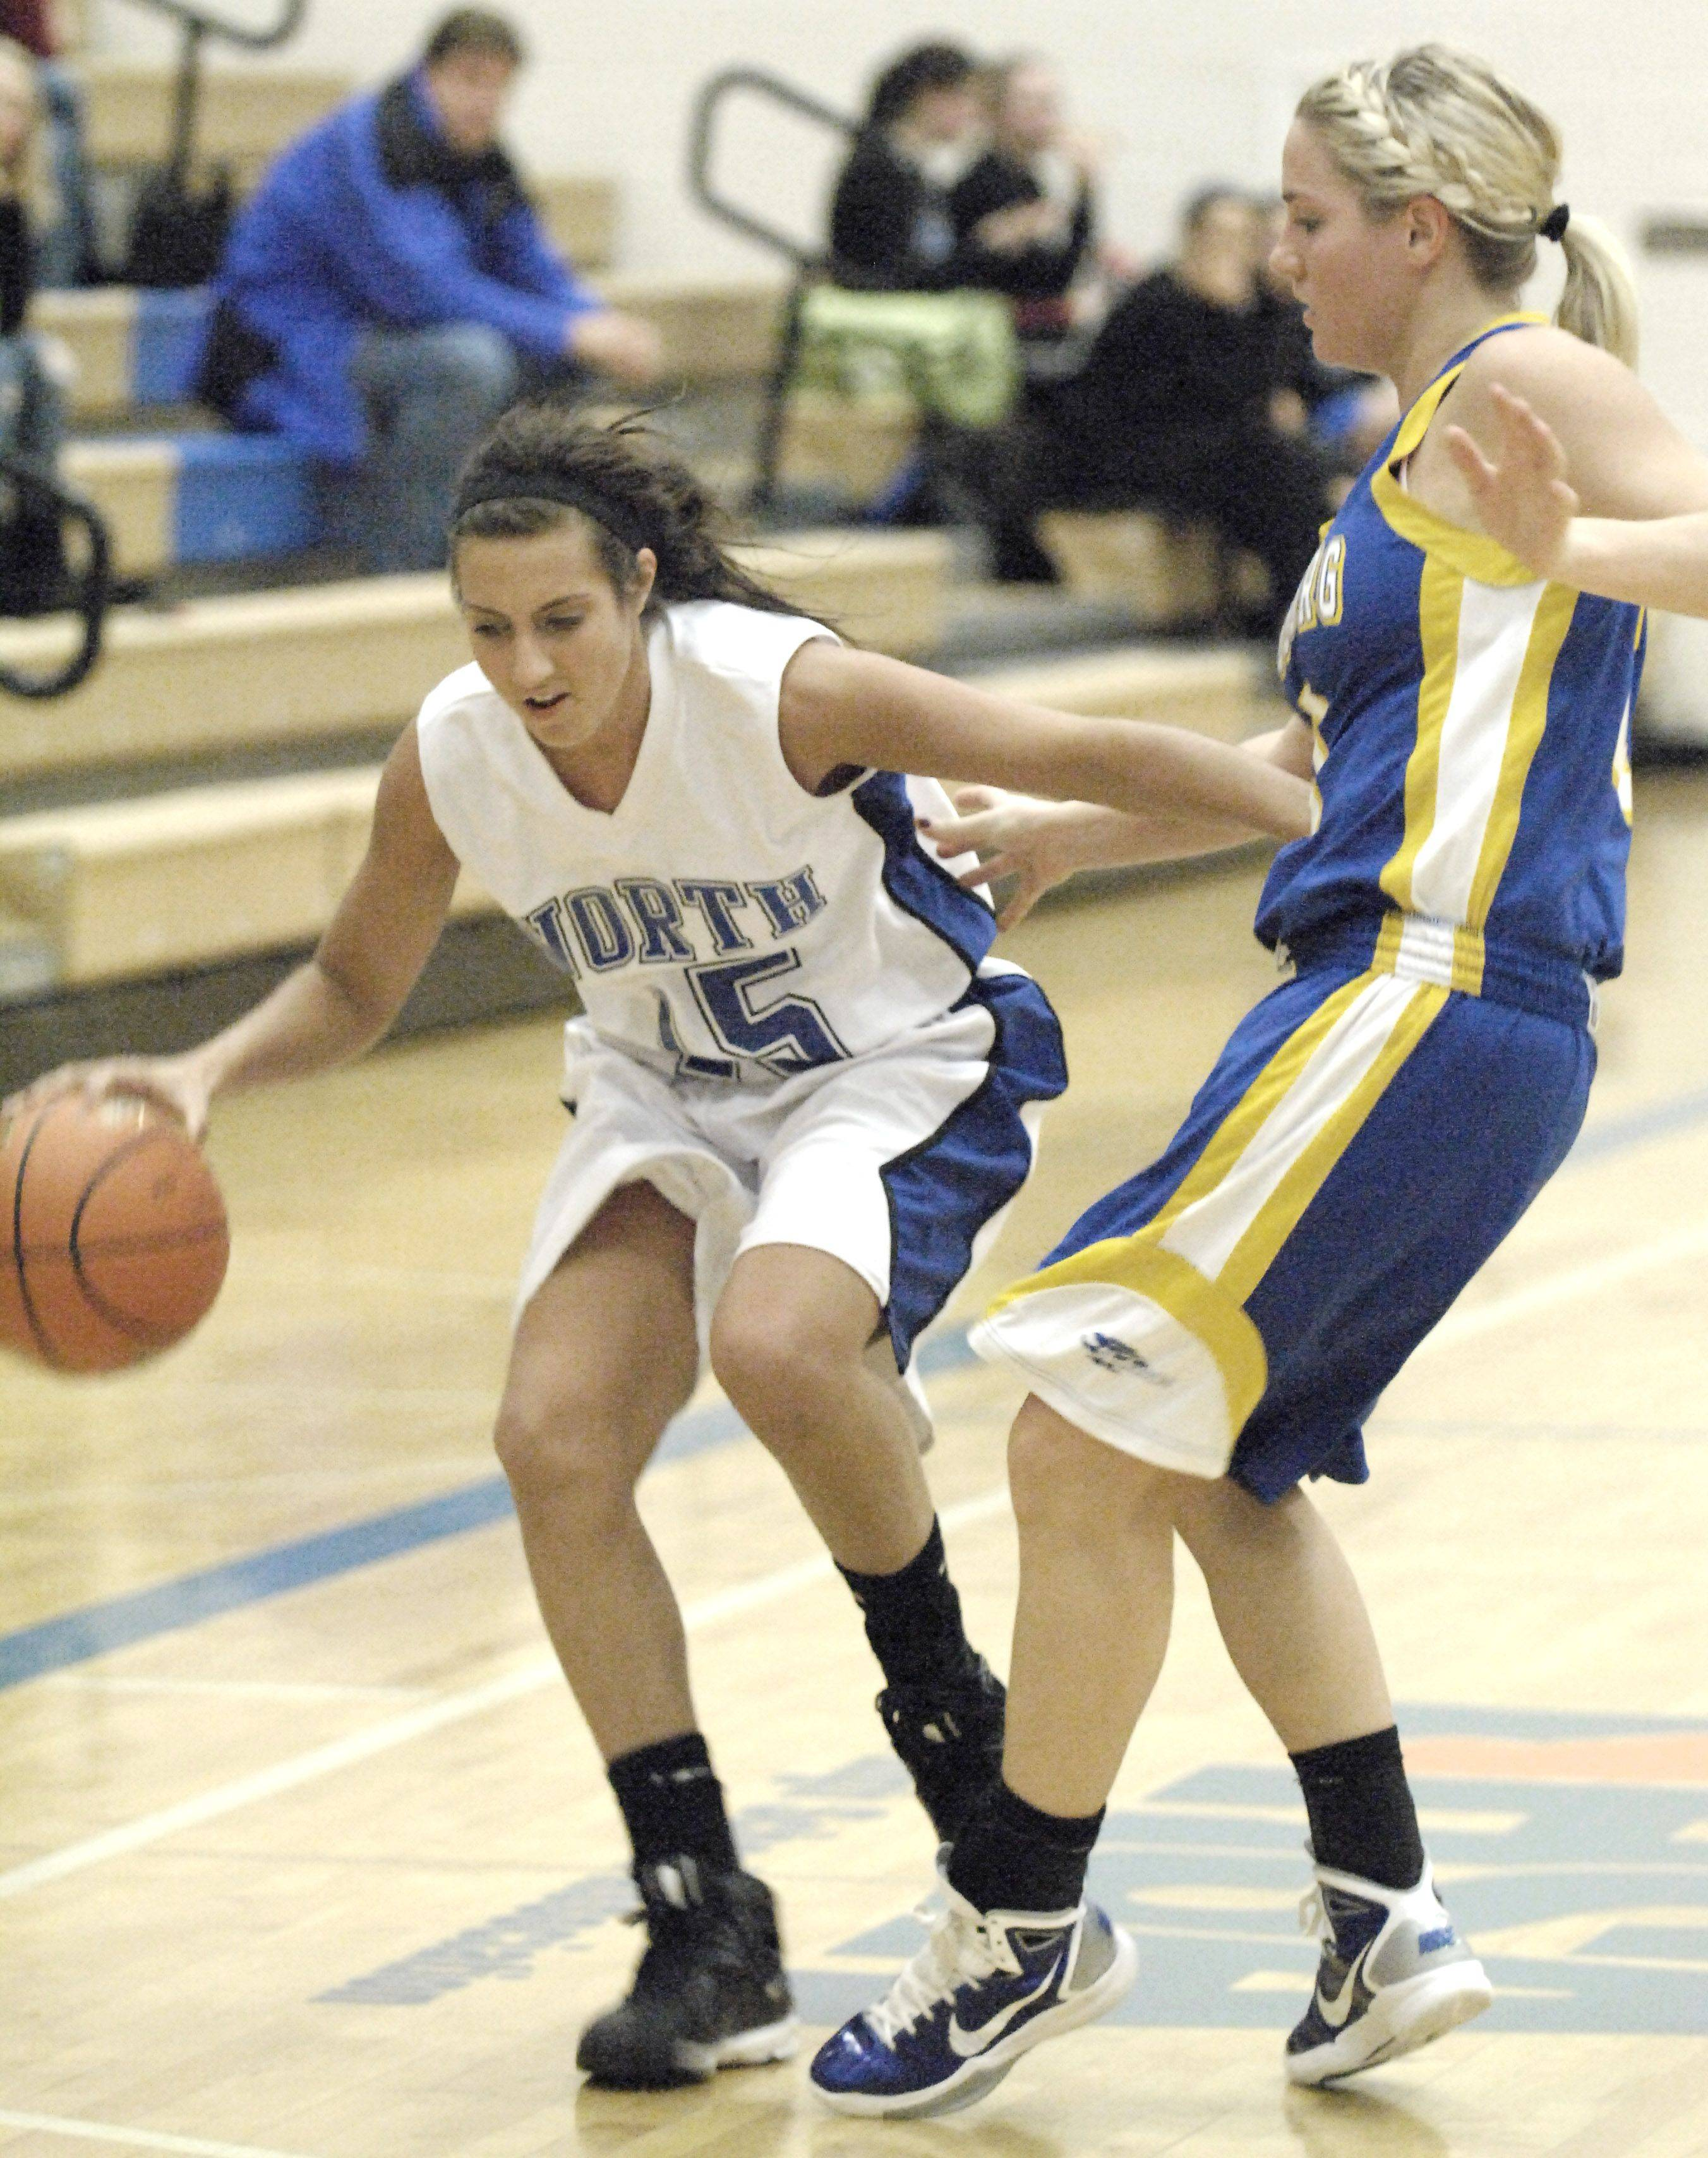 St. Charles North's Natalie Capone keeps Johnsburg's Susan Conroy at bay as she approaches the basket.